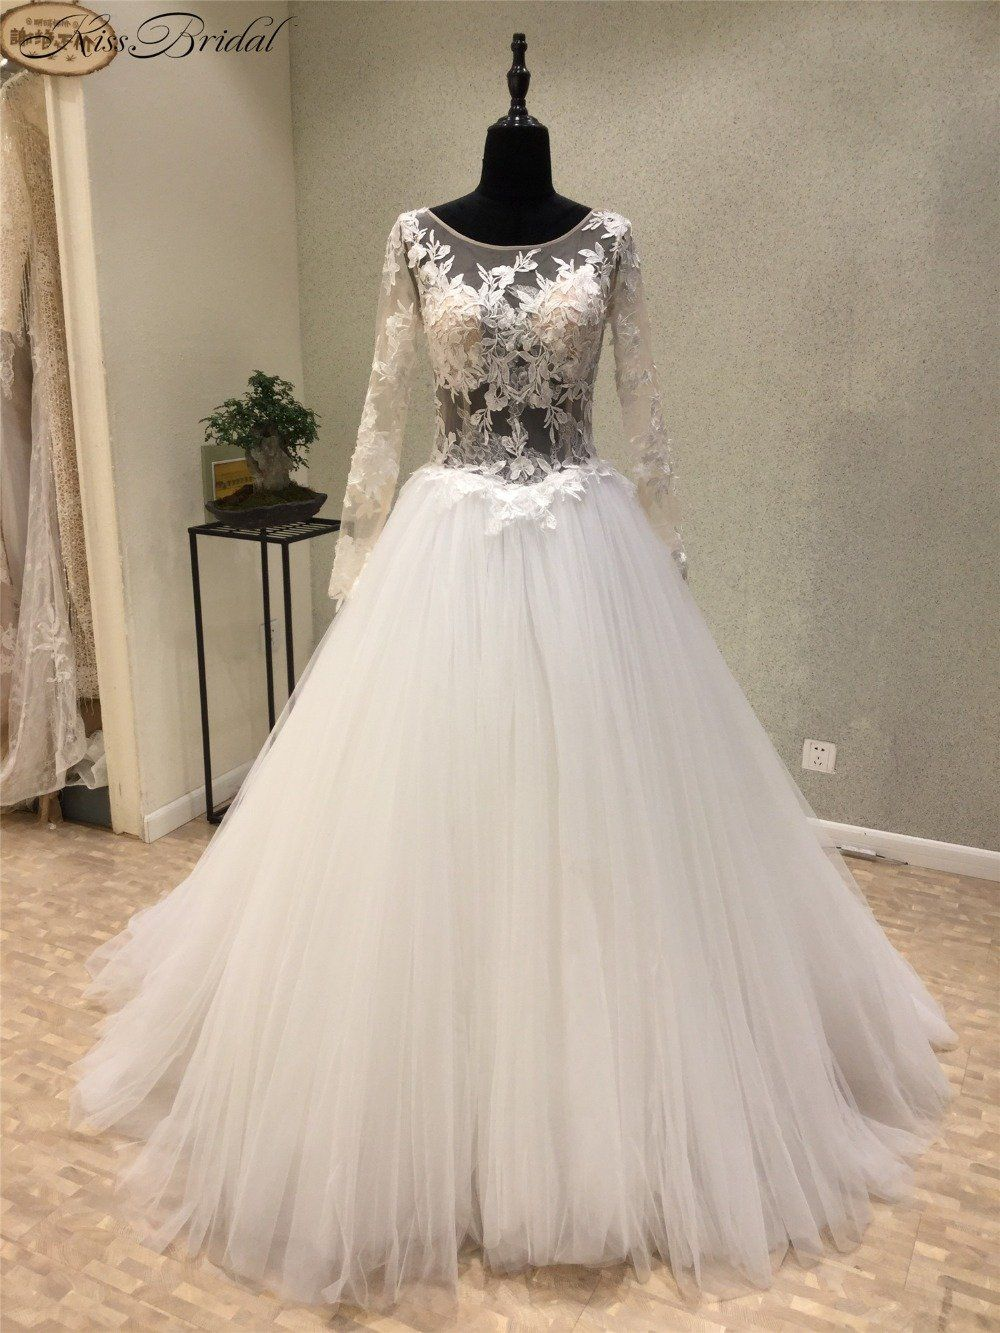 Sexy new long wedding dress long sleeves chapel train appliques